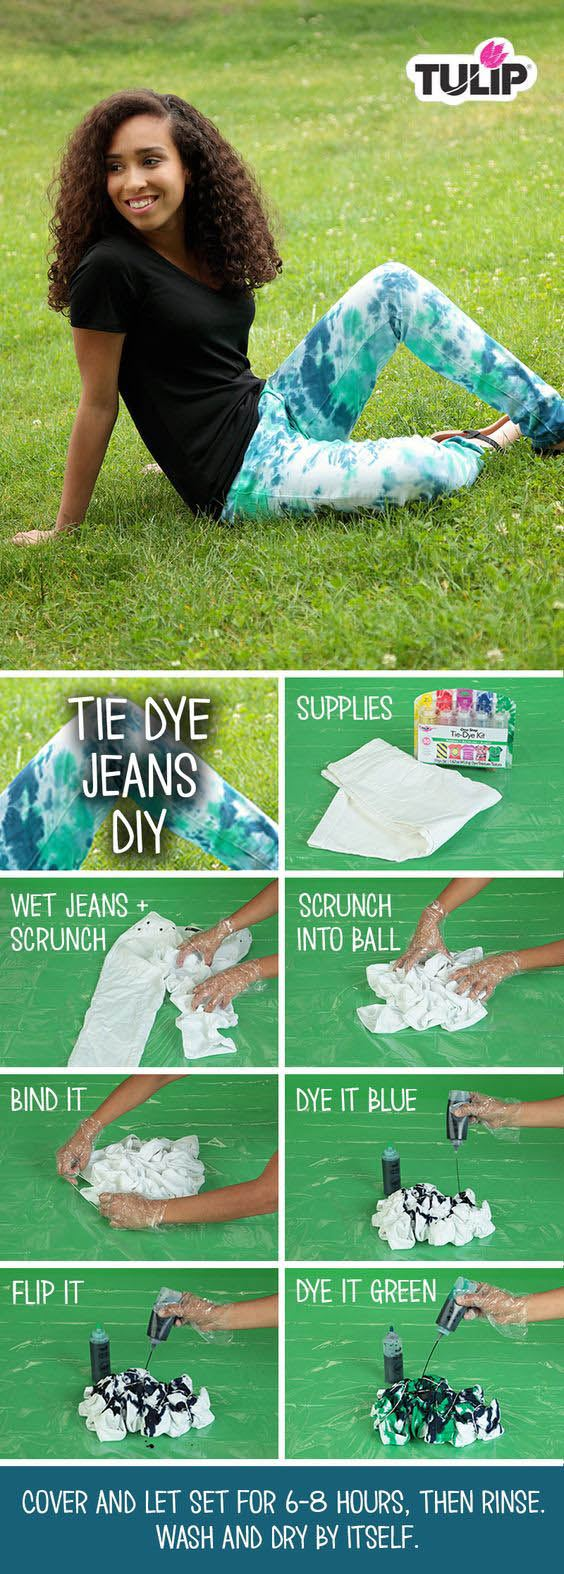 Crumple Tie-Dye Technique Use this easy crumple technique to add dye to denim, t-shirts, summer dresses and more! #crumpletiedye #howtotiedye #tiedyejeans #easytiedye #tiedyeyoursummer #TDYS